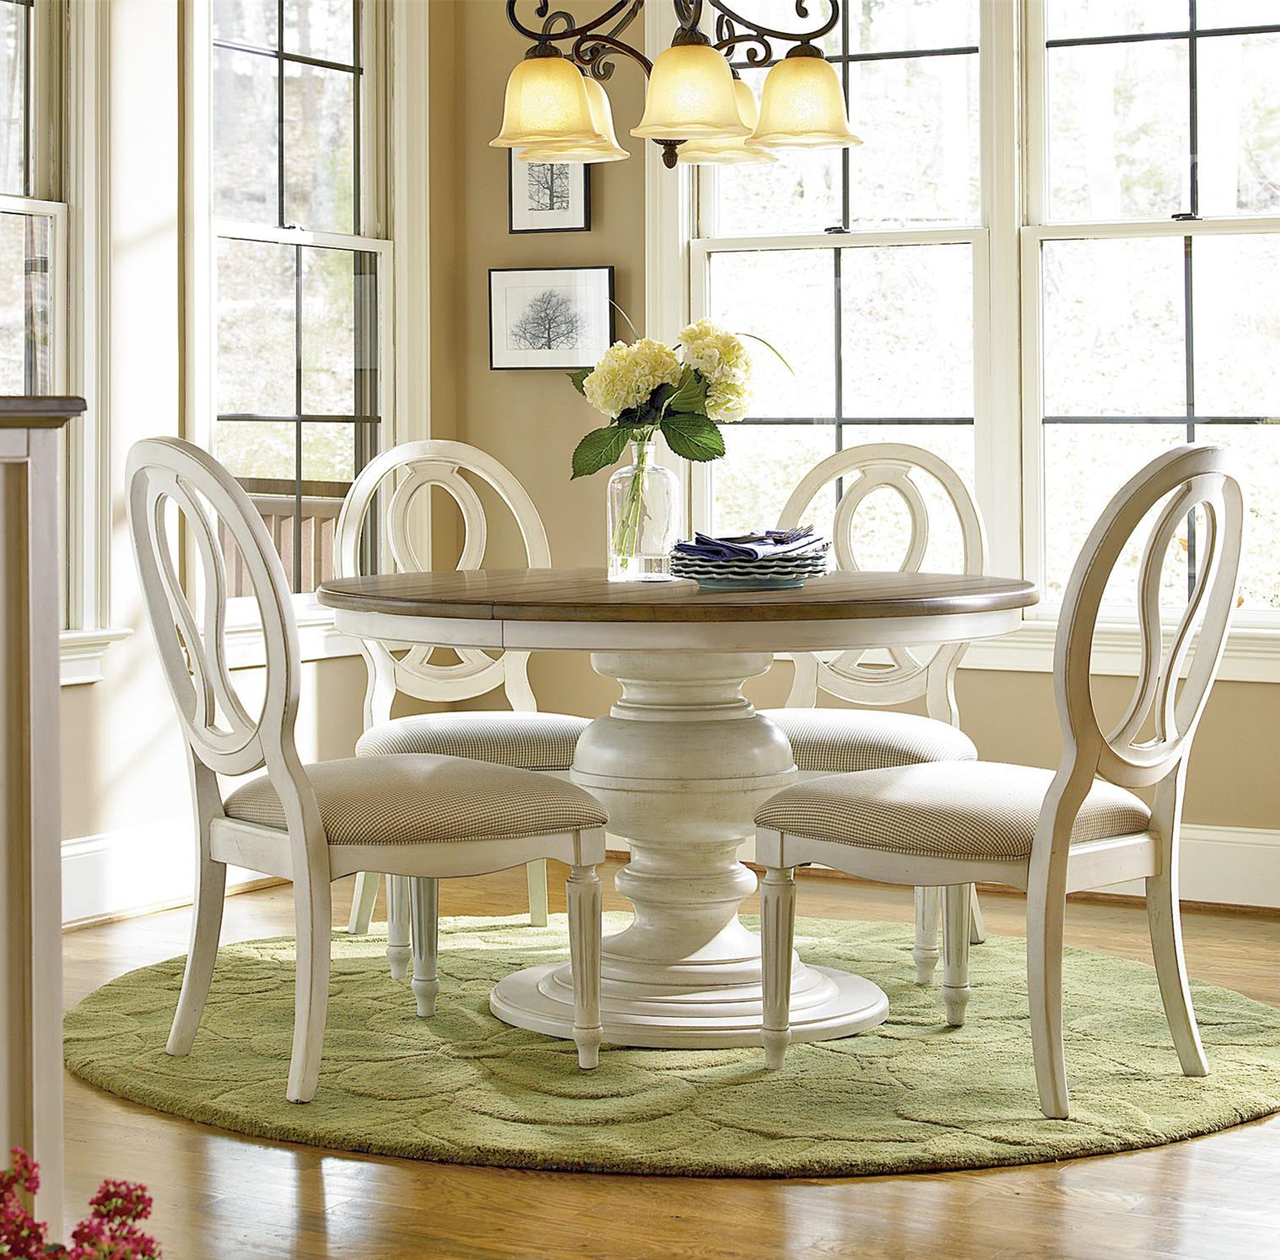 Country Chic 5 Piece Round White Dining Table Set